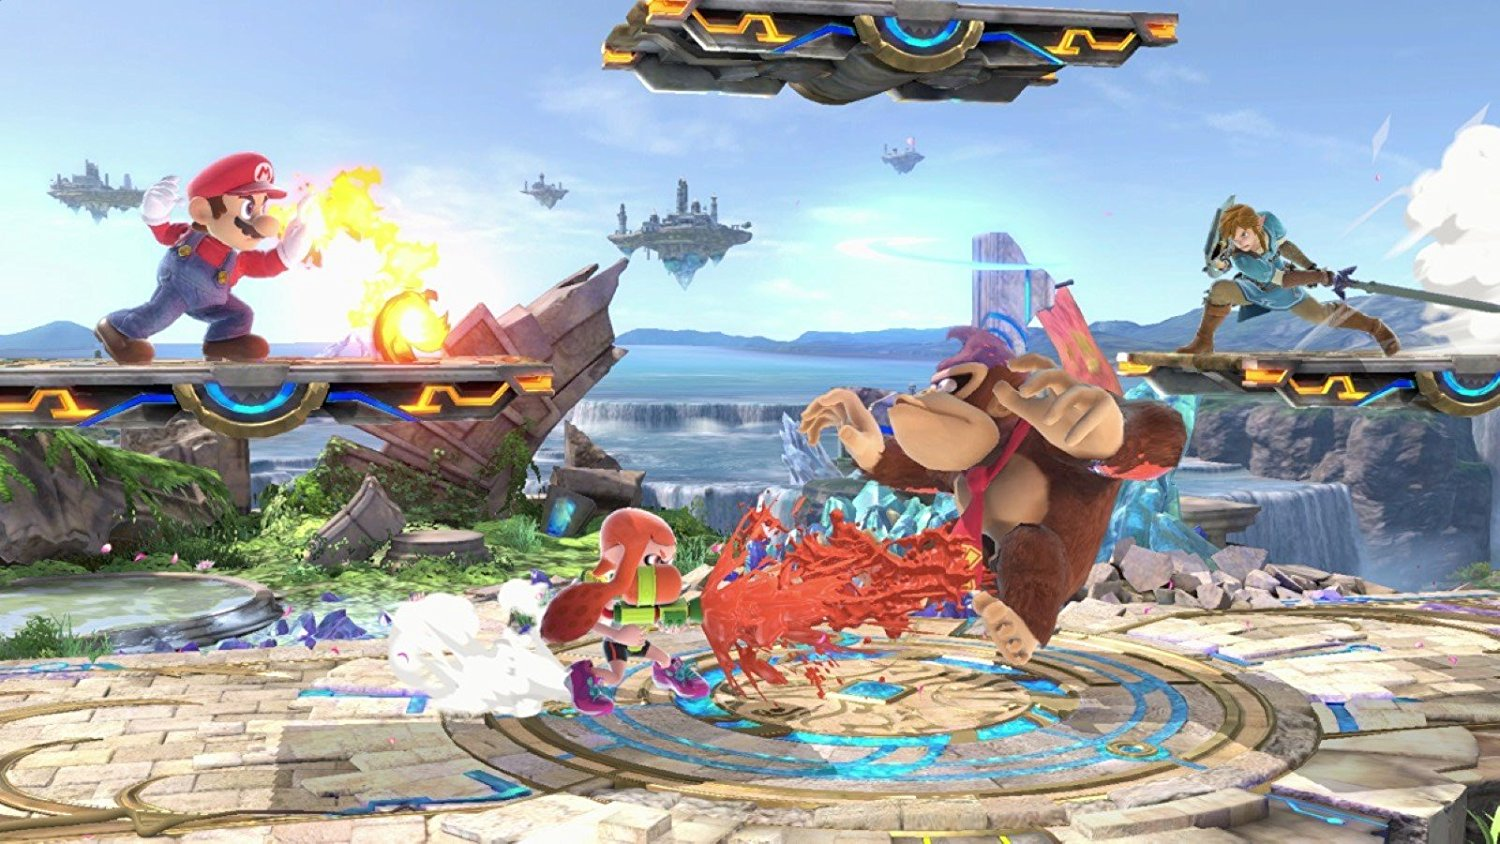 Super Smash Bros. Ultimate : tout ce que l'on sait sur le jeu de combat phare de la Switch